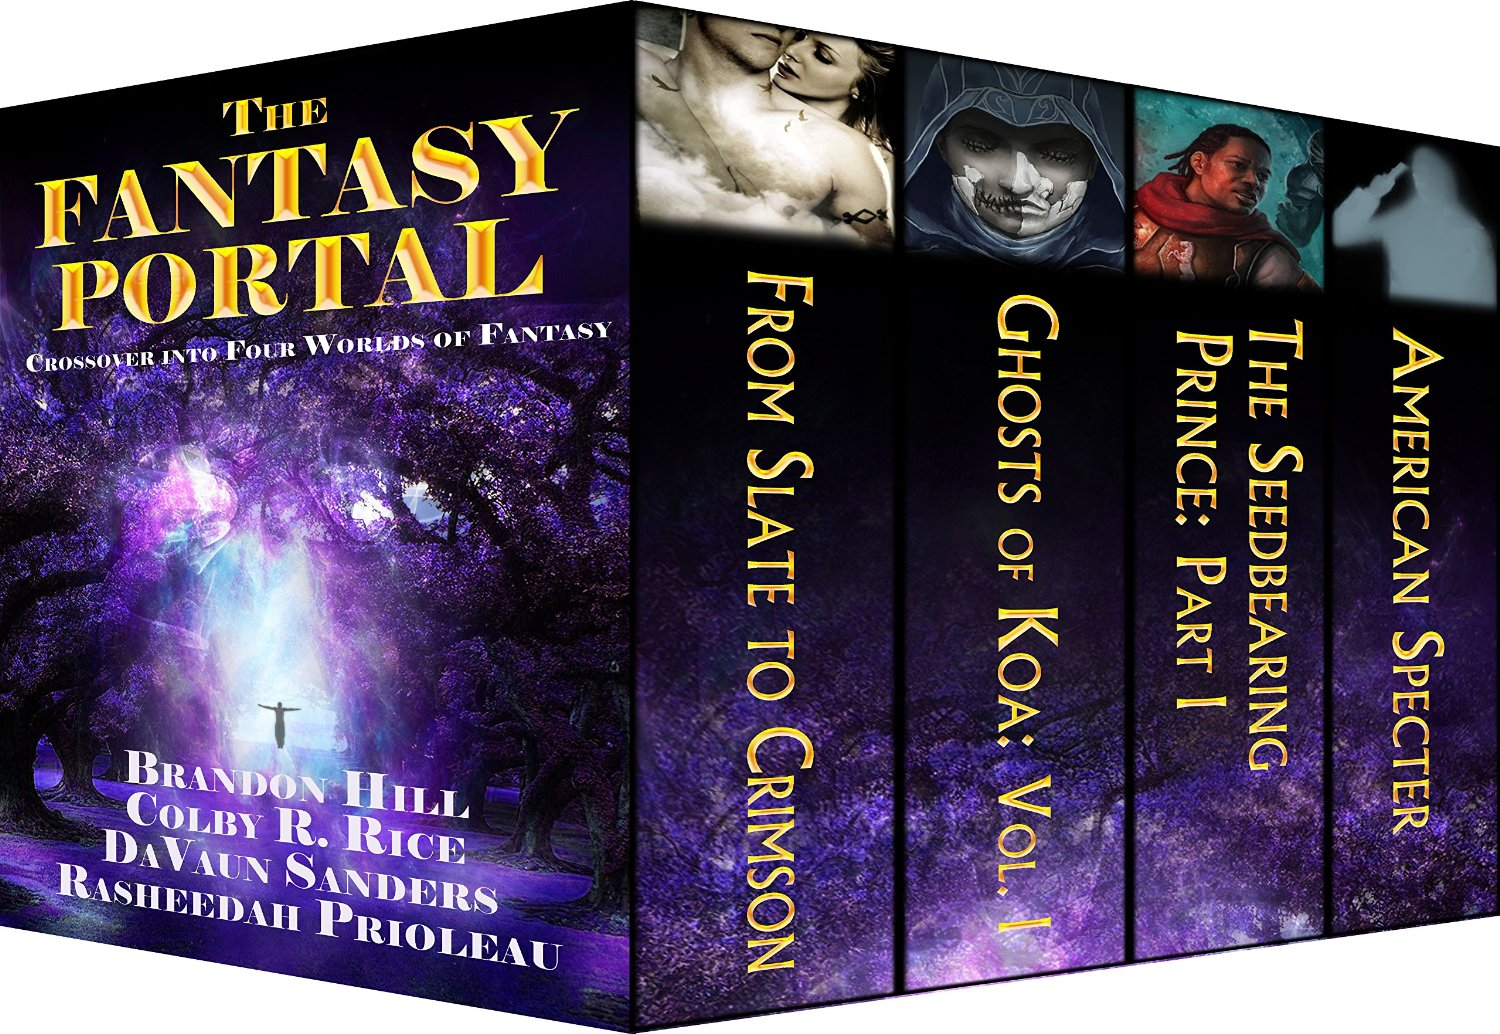 Four Kick-ass Authors, Four Worlds of Wonder. Enter The Fantasy Portal!